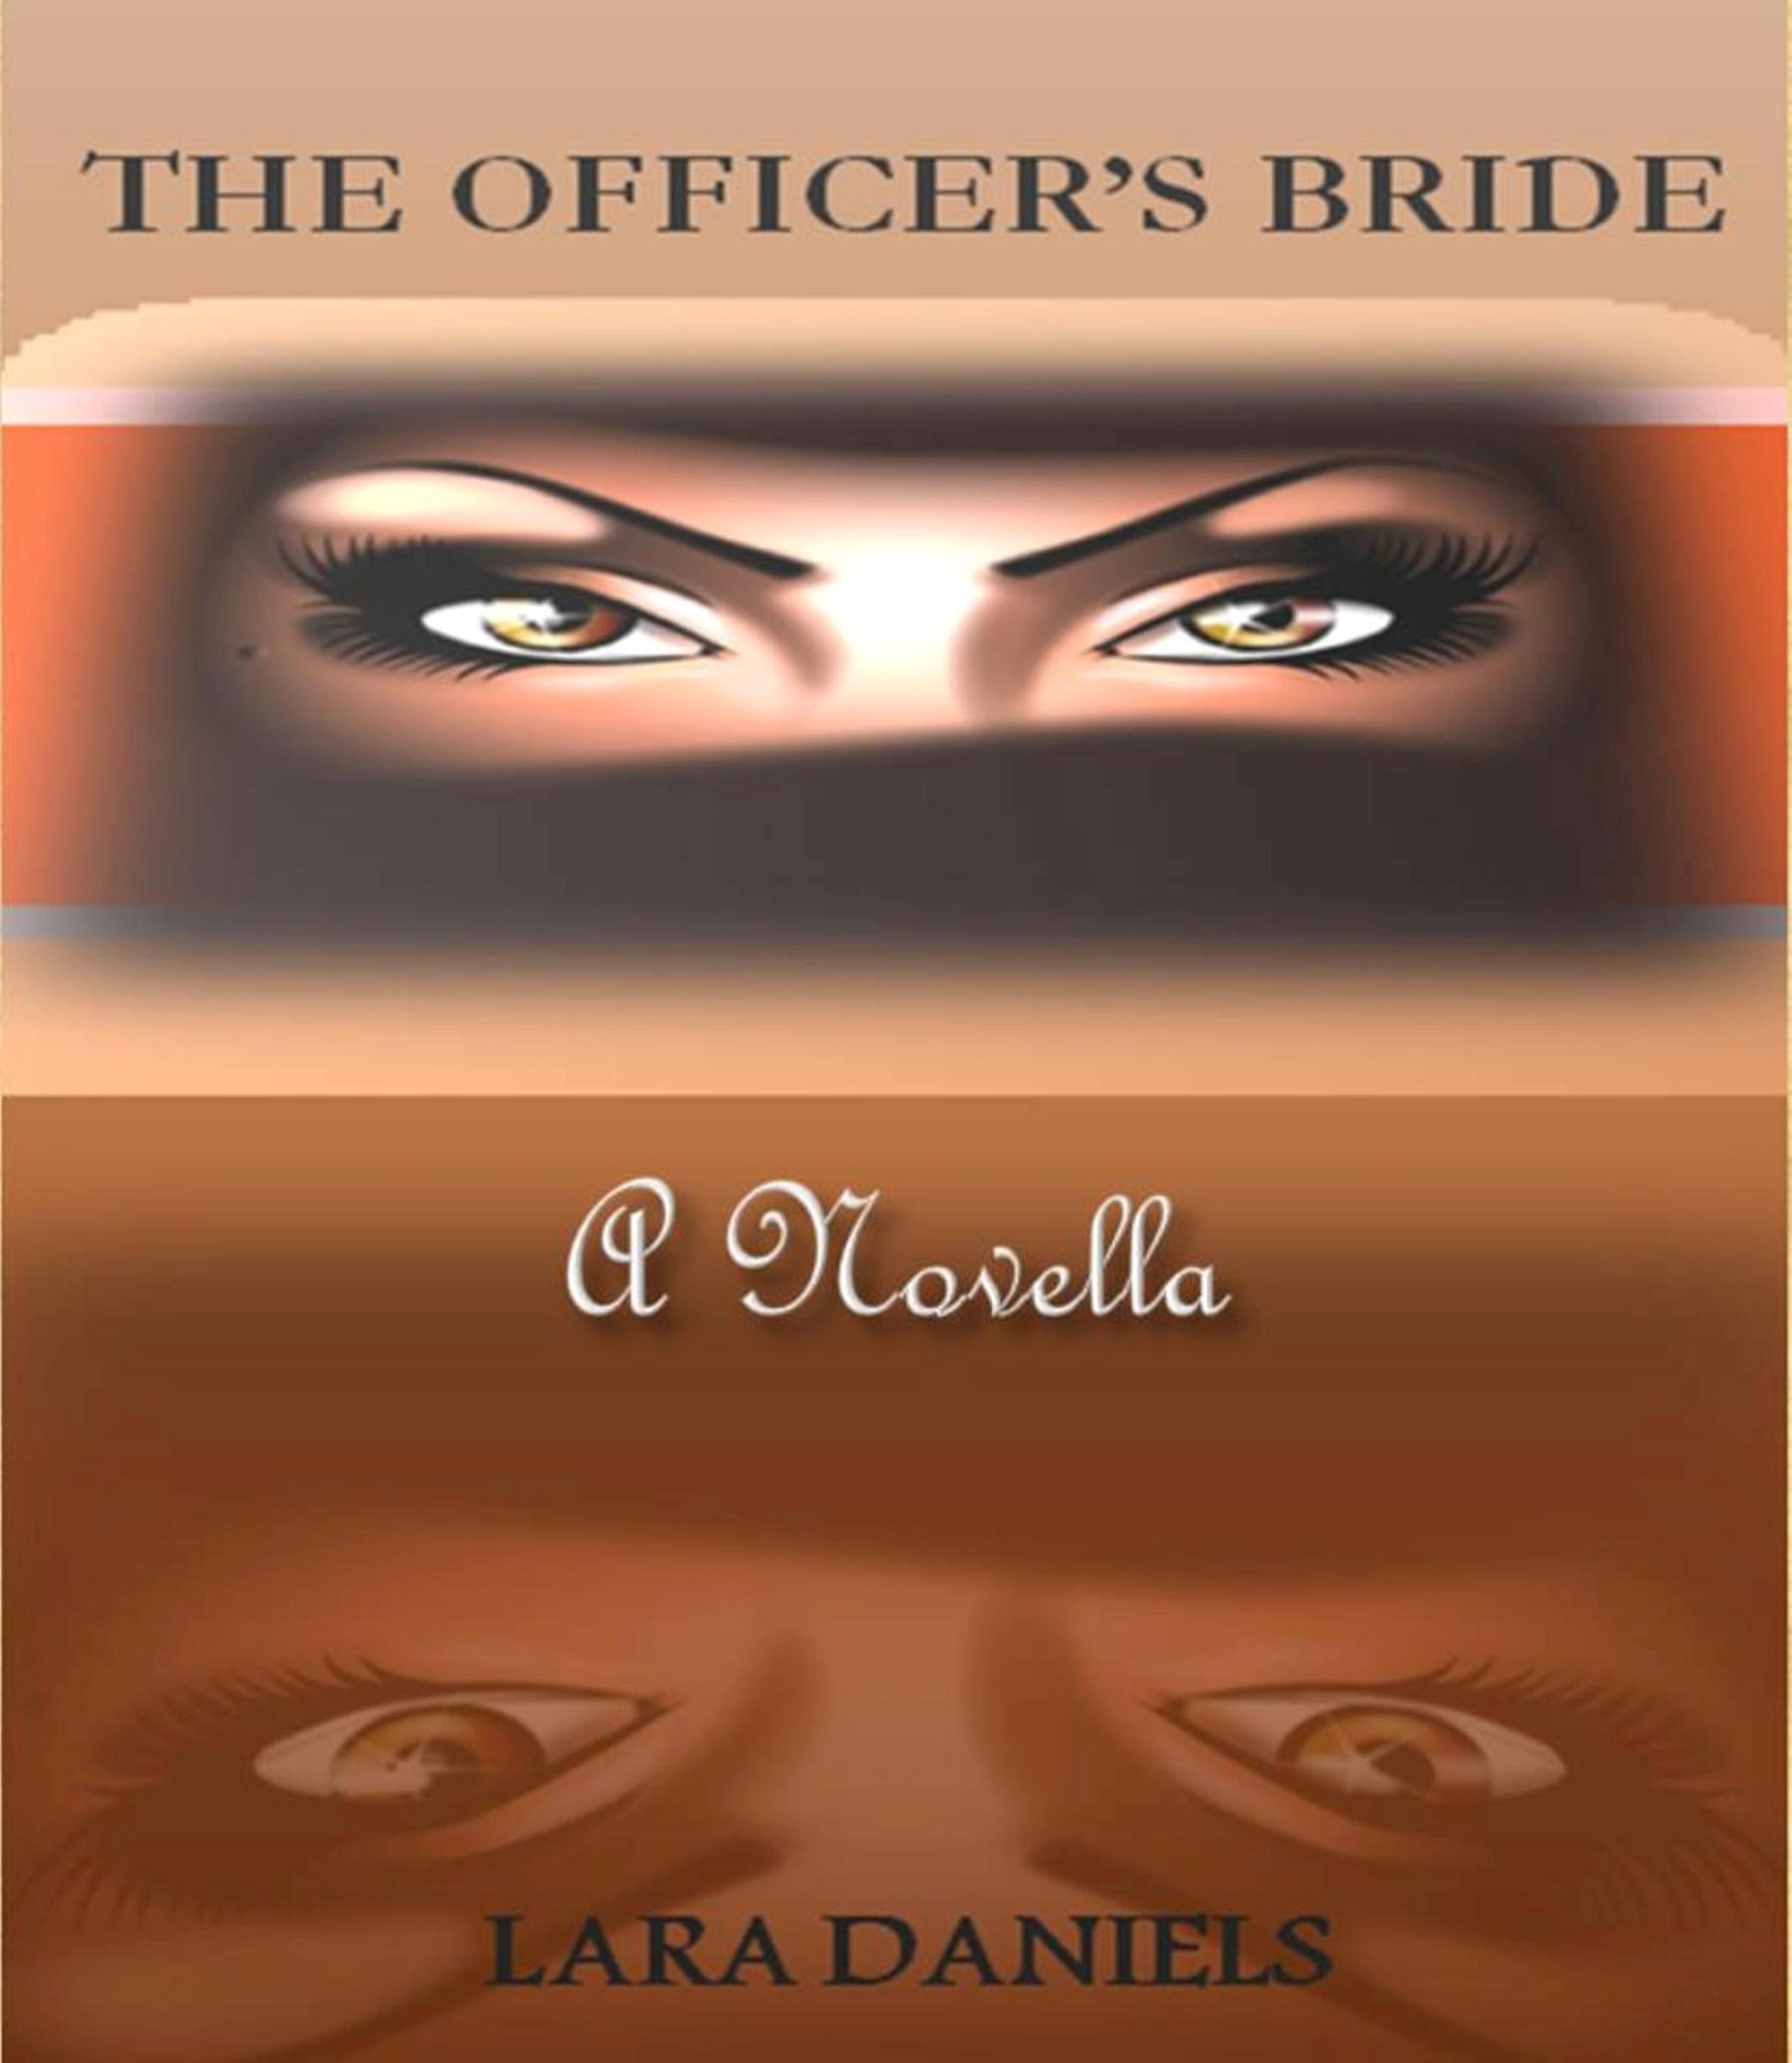 The Officer's Bride